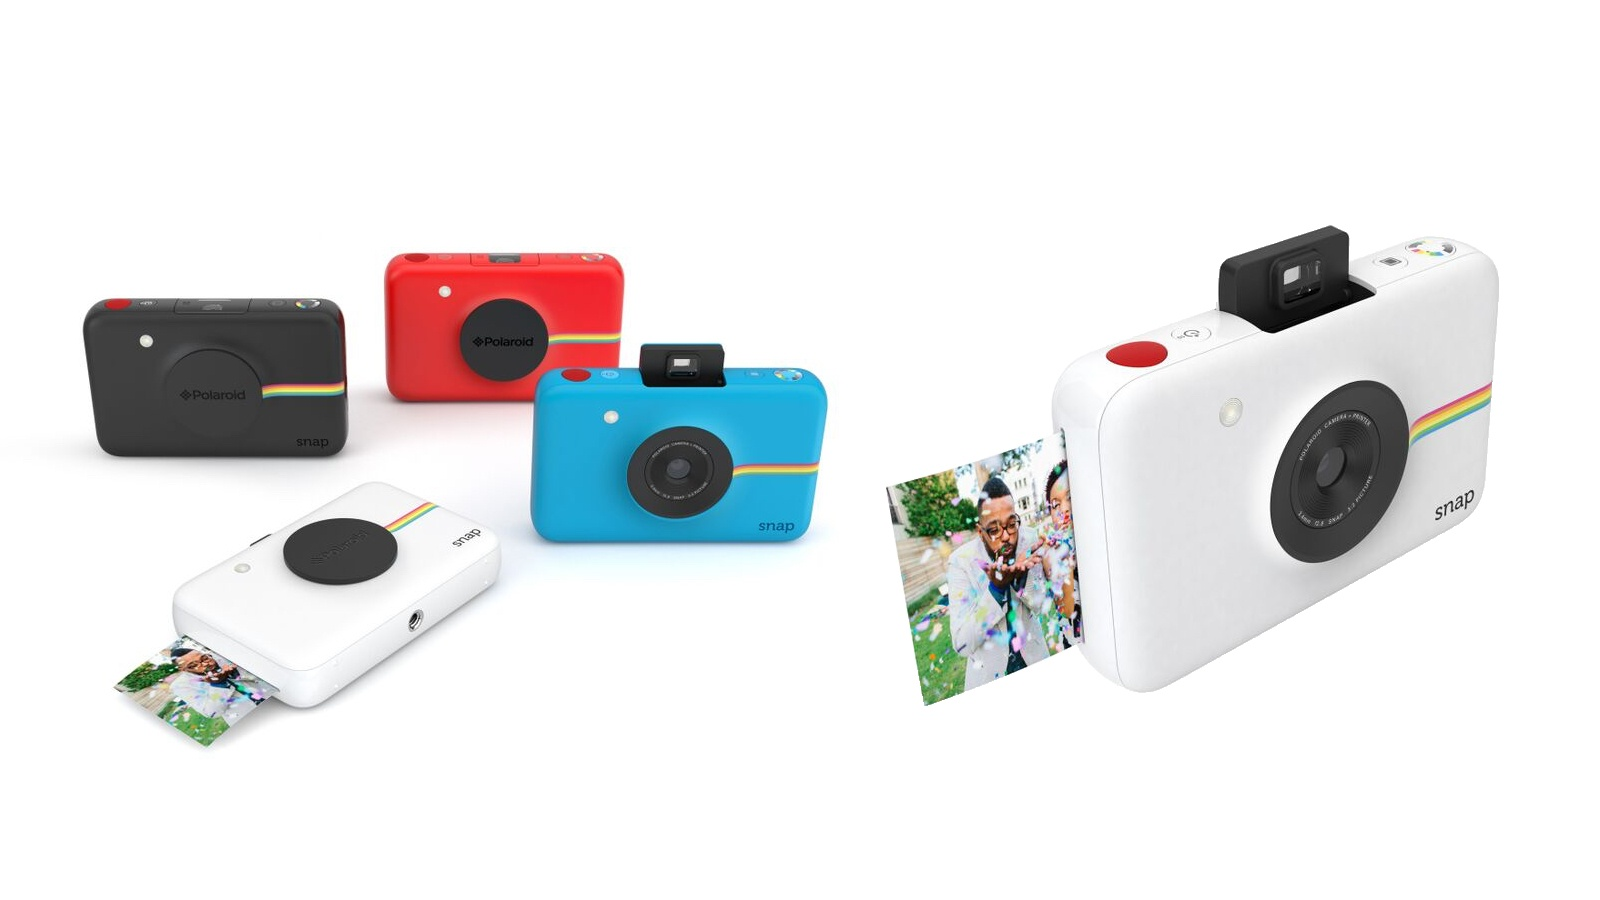 pocket-size-polaroid-spits-out-instant-prints-image-cultofandroidcomwp-contentuploads201509polaroid-snap-instagram-jpg